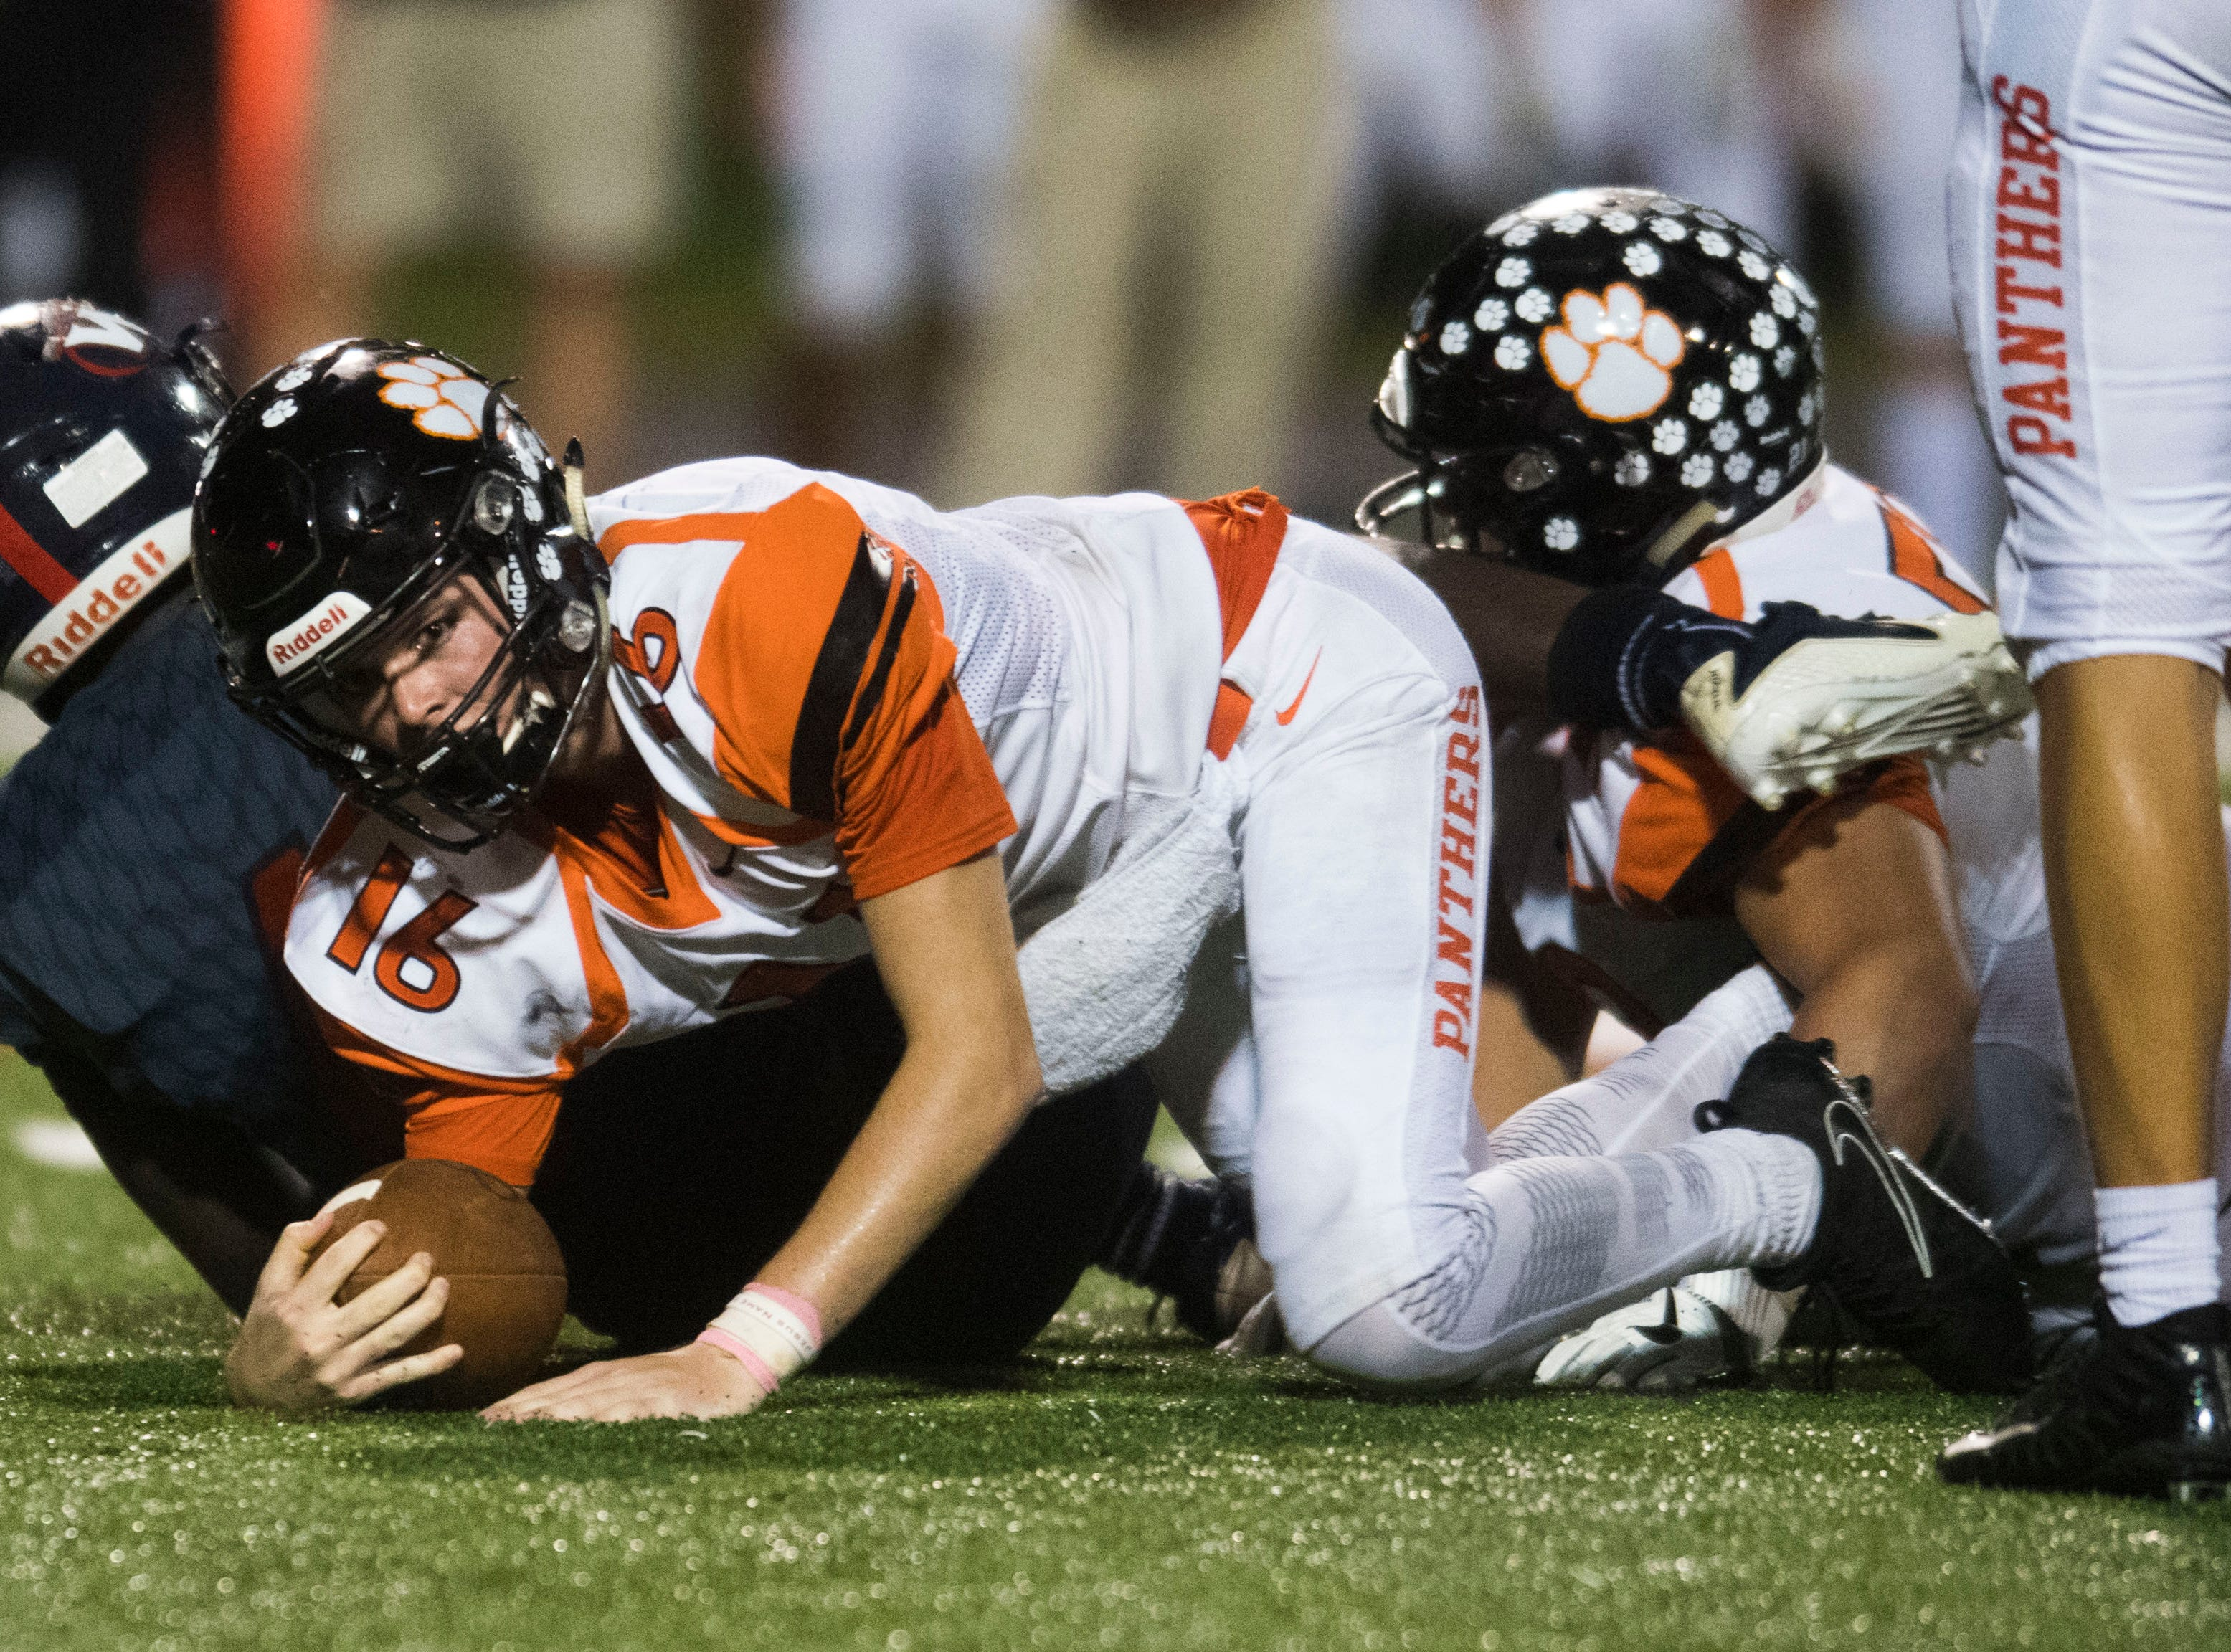 Powell's Walker Trusley (16) falls to the ground during a game between West and Powell at West, Friday, Oct. 5, 2018. Powell defeated West 36-21.